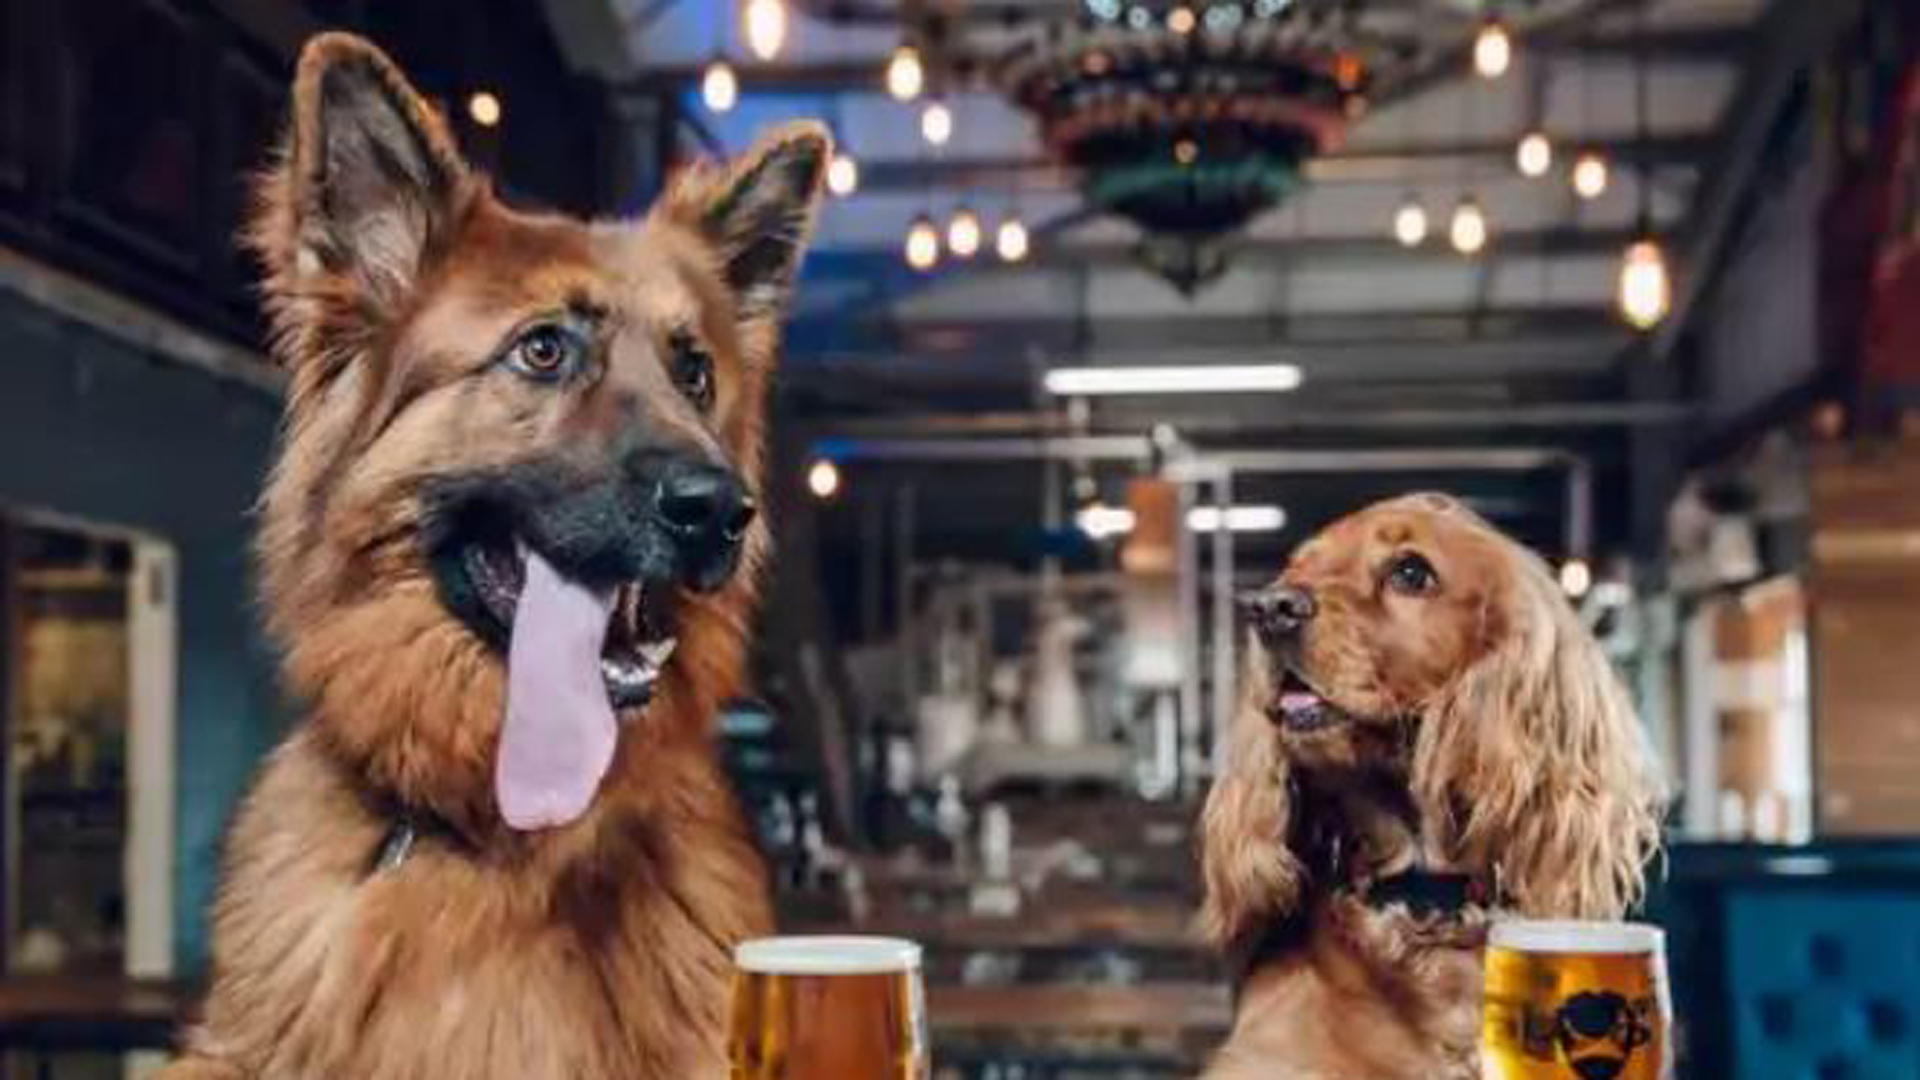 Brewery offers paid 'paw-ternity' leave for employees with new puppies